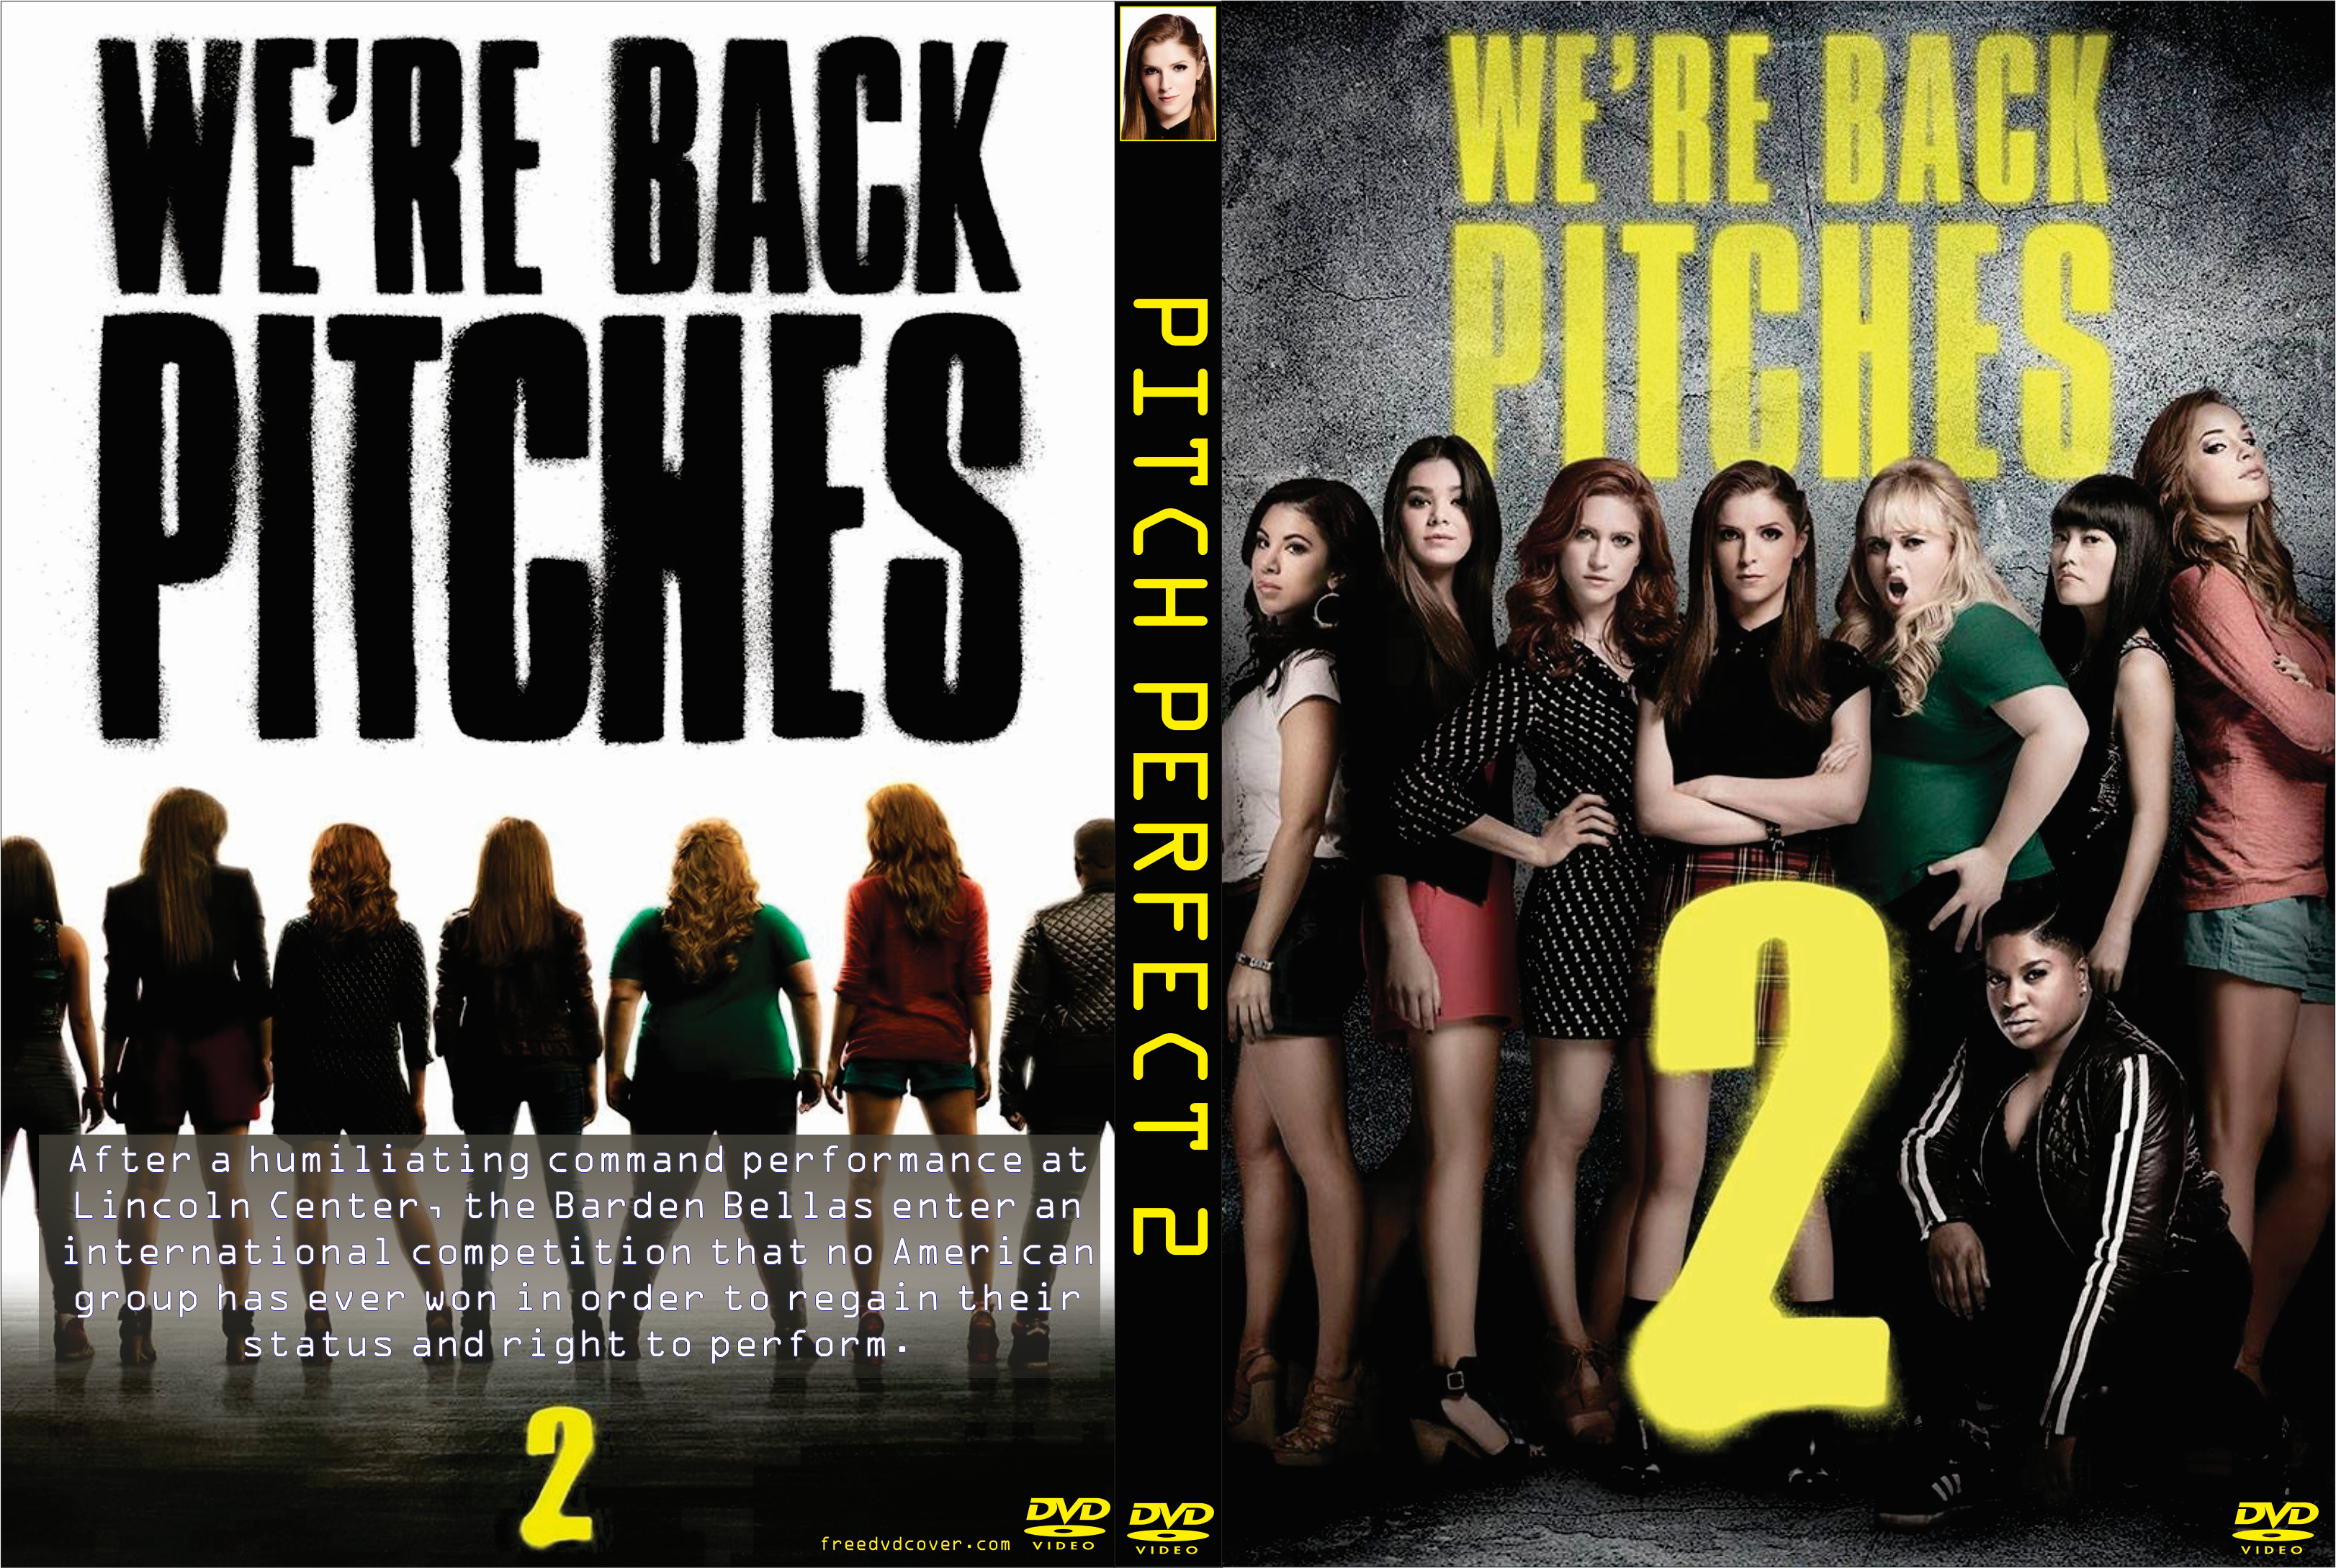 Pitch Perfect 2 2015 Front Dvd Covers Cover Century Over 500 000 Album Art Covers For Free